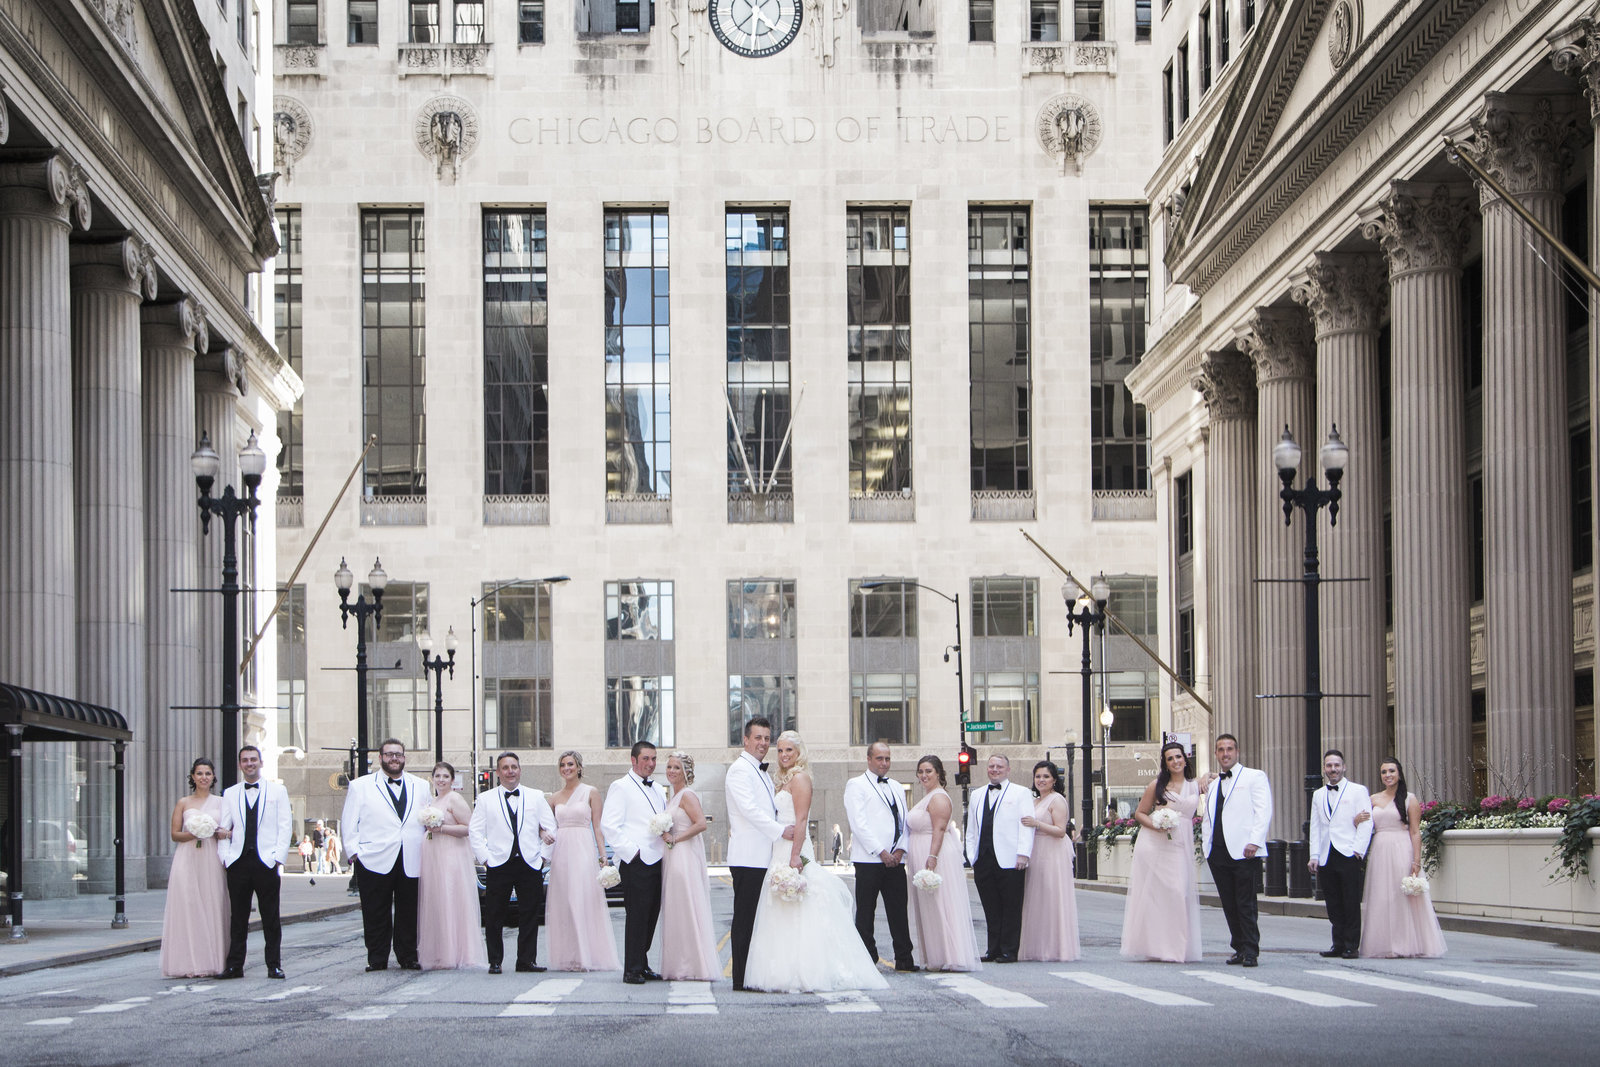 board of trade pictures wedding photographer chicago illinois wedding photographer-7695